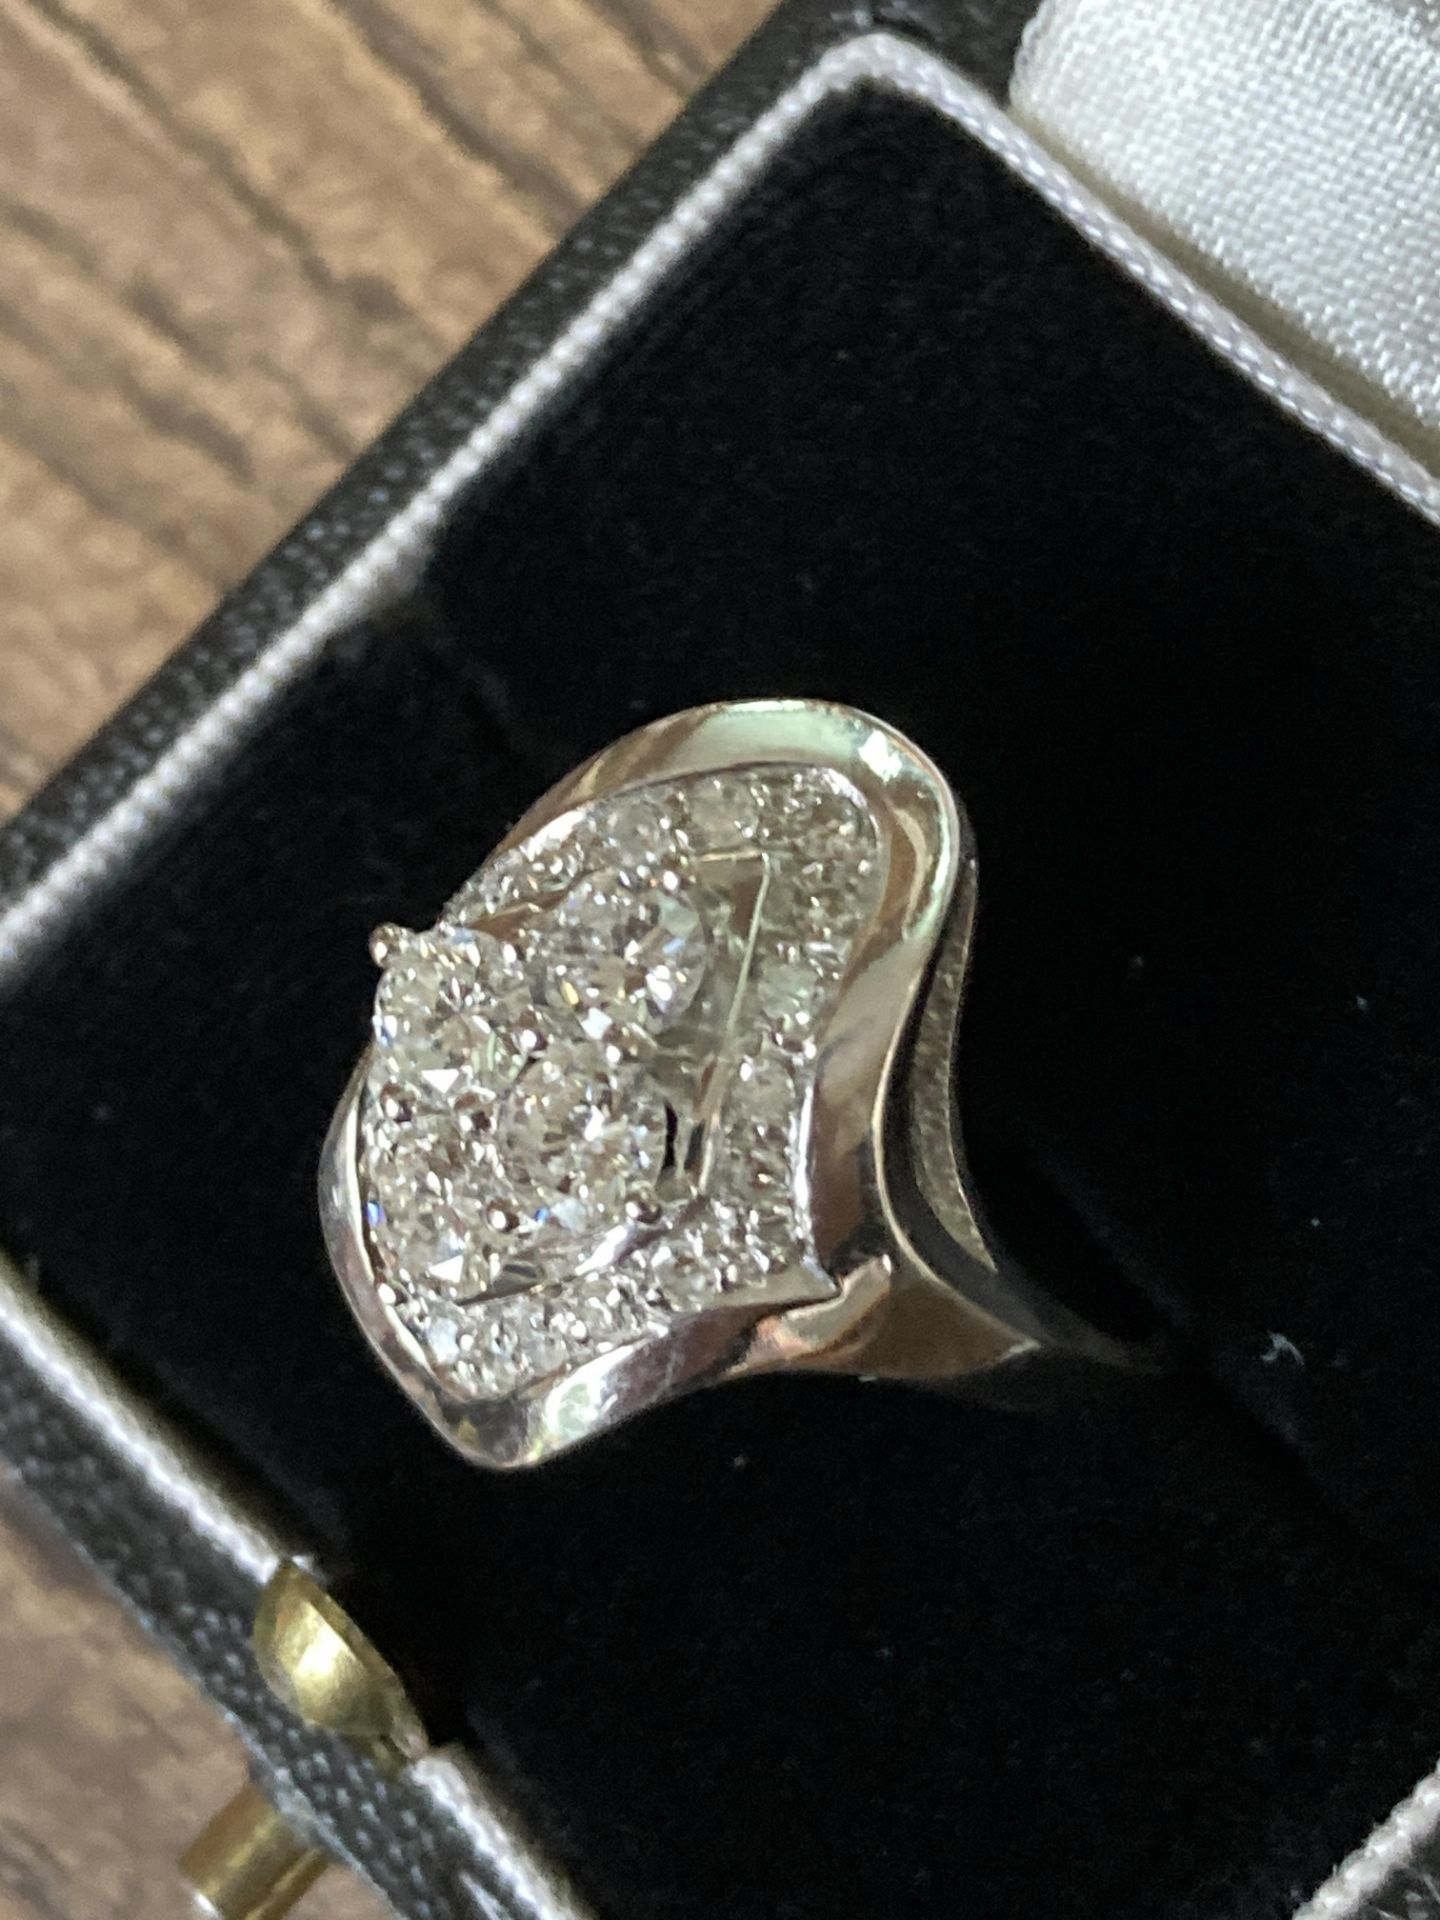 1CT DIAMOND RING IN 14CT WHITE GOLD - SIZE: O 1/2 / WEIGHT: 7.4G - Image 3 of 5